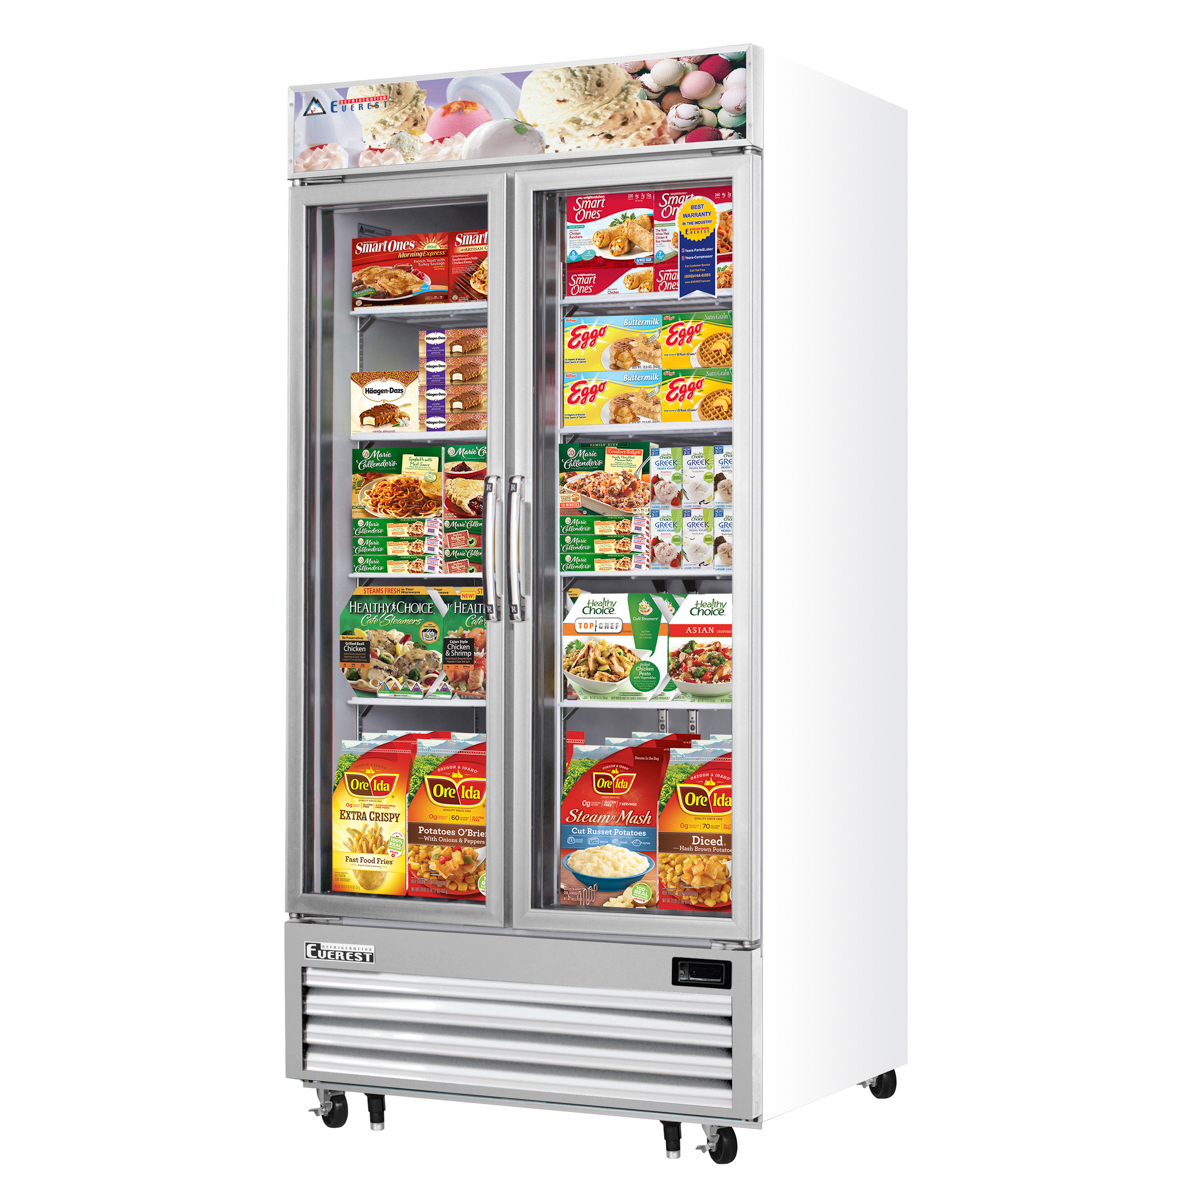 Doors Everest Everest Emgf36 41 2 Glass Swing Door Freezer Mega